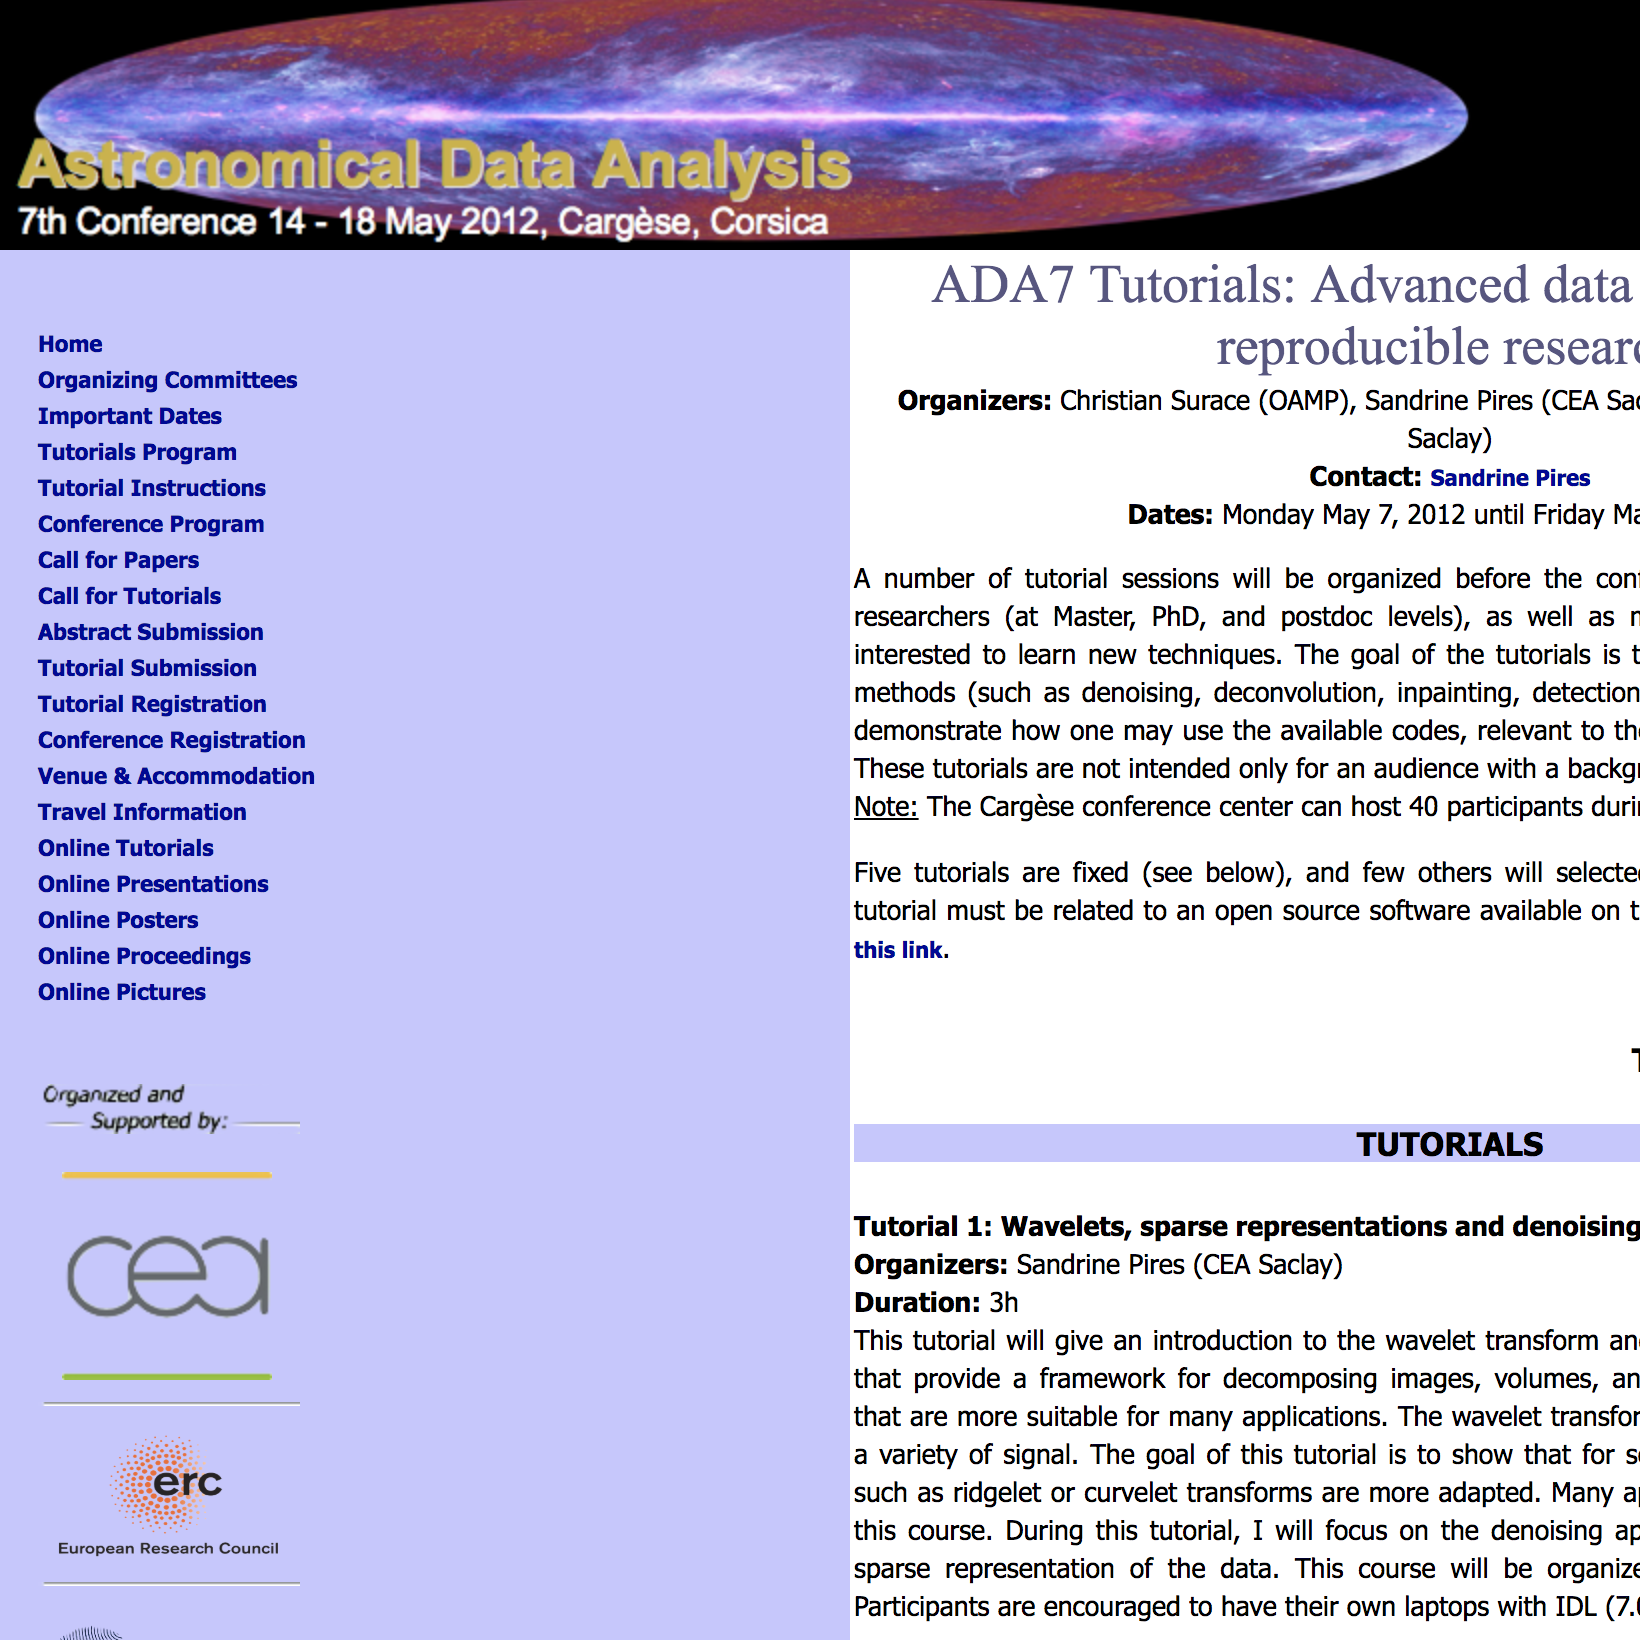 7th Edition of the Astronomical Data Analysis (ADA7) Summer School